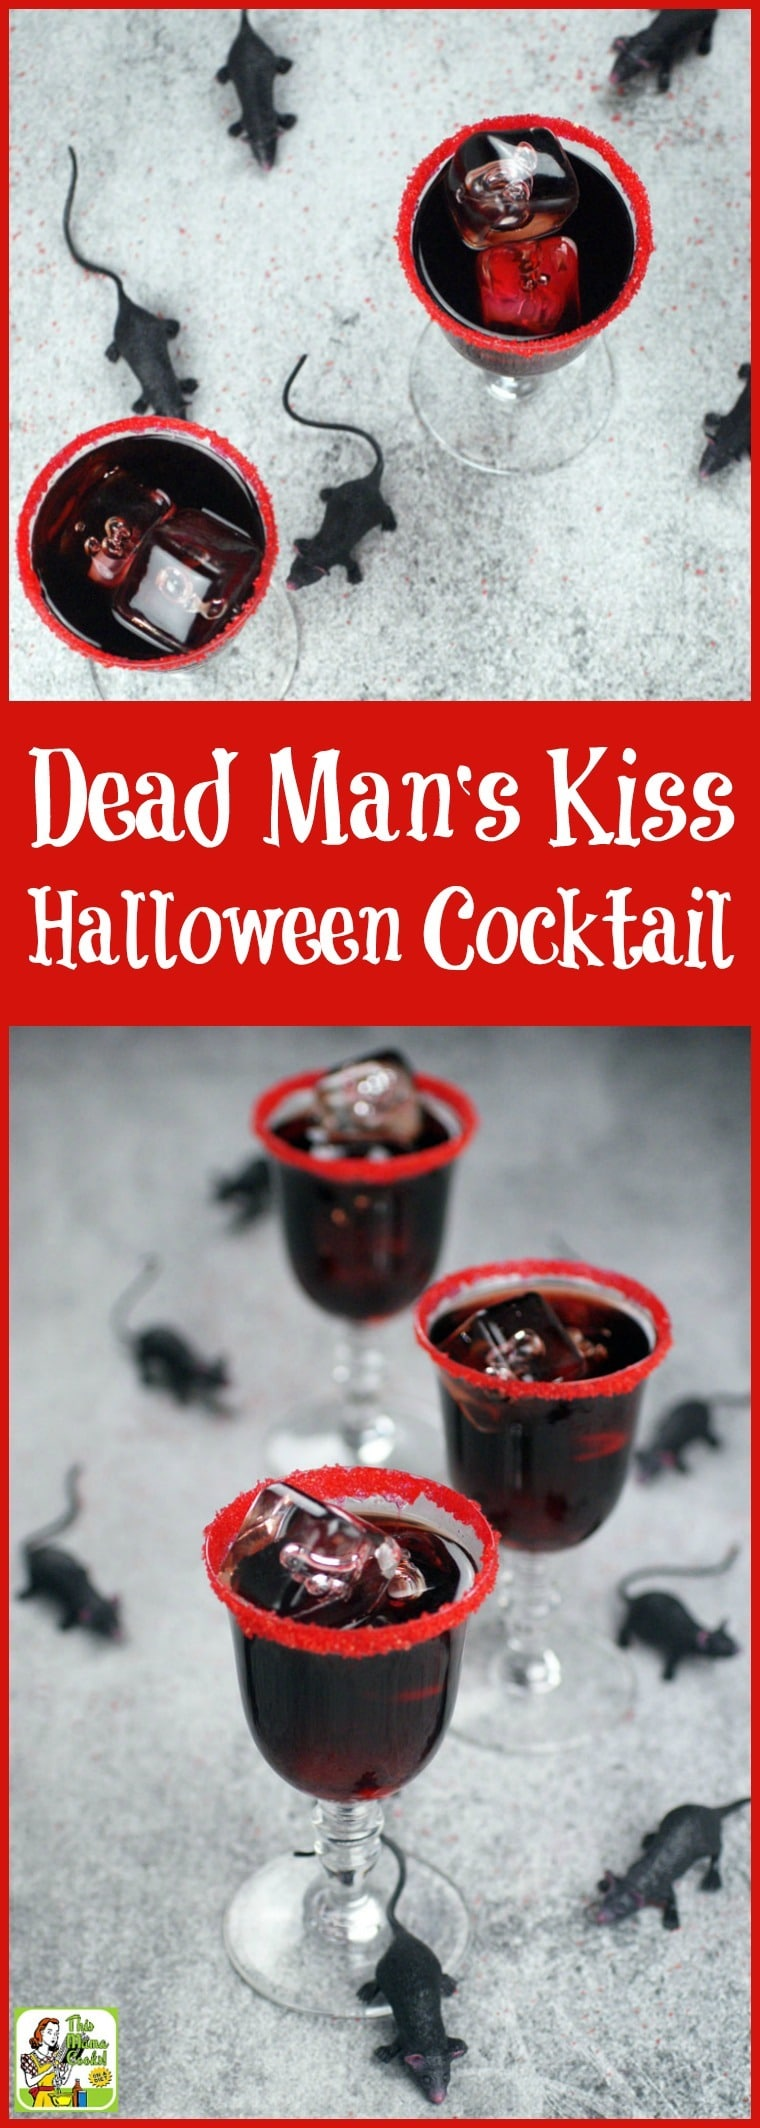 Dead Man's Kiss Black Cocktail Recipe